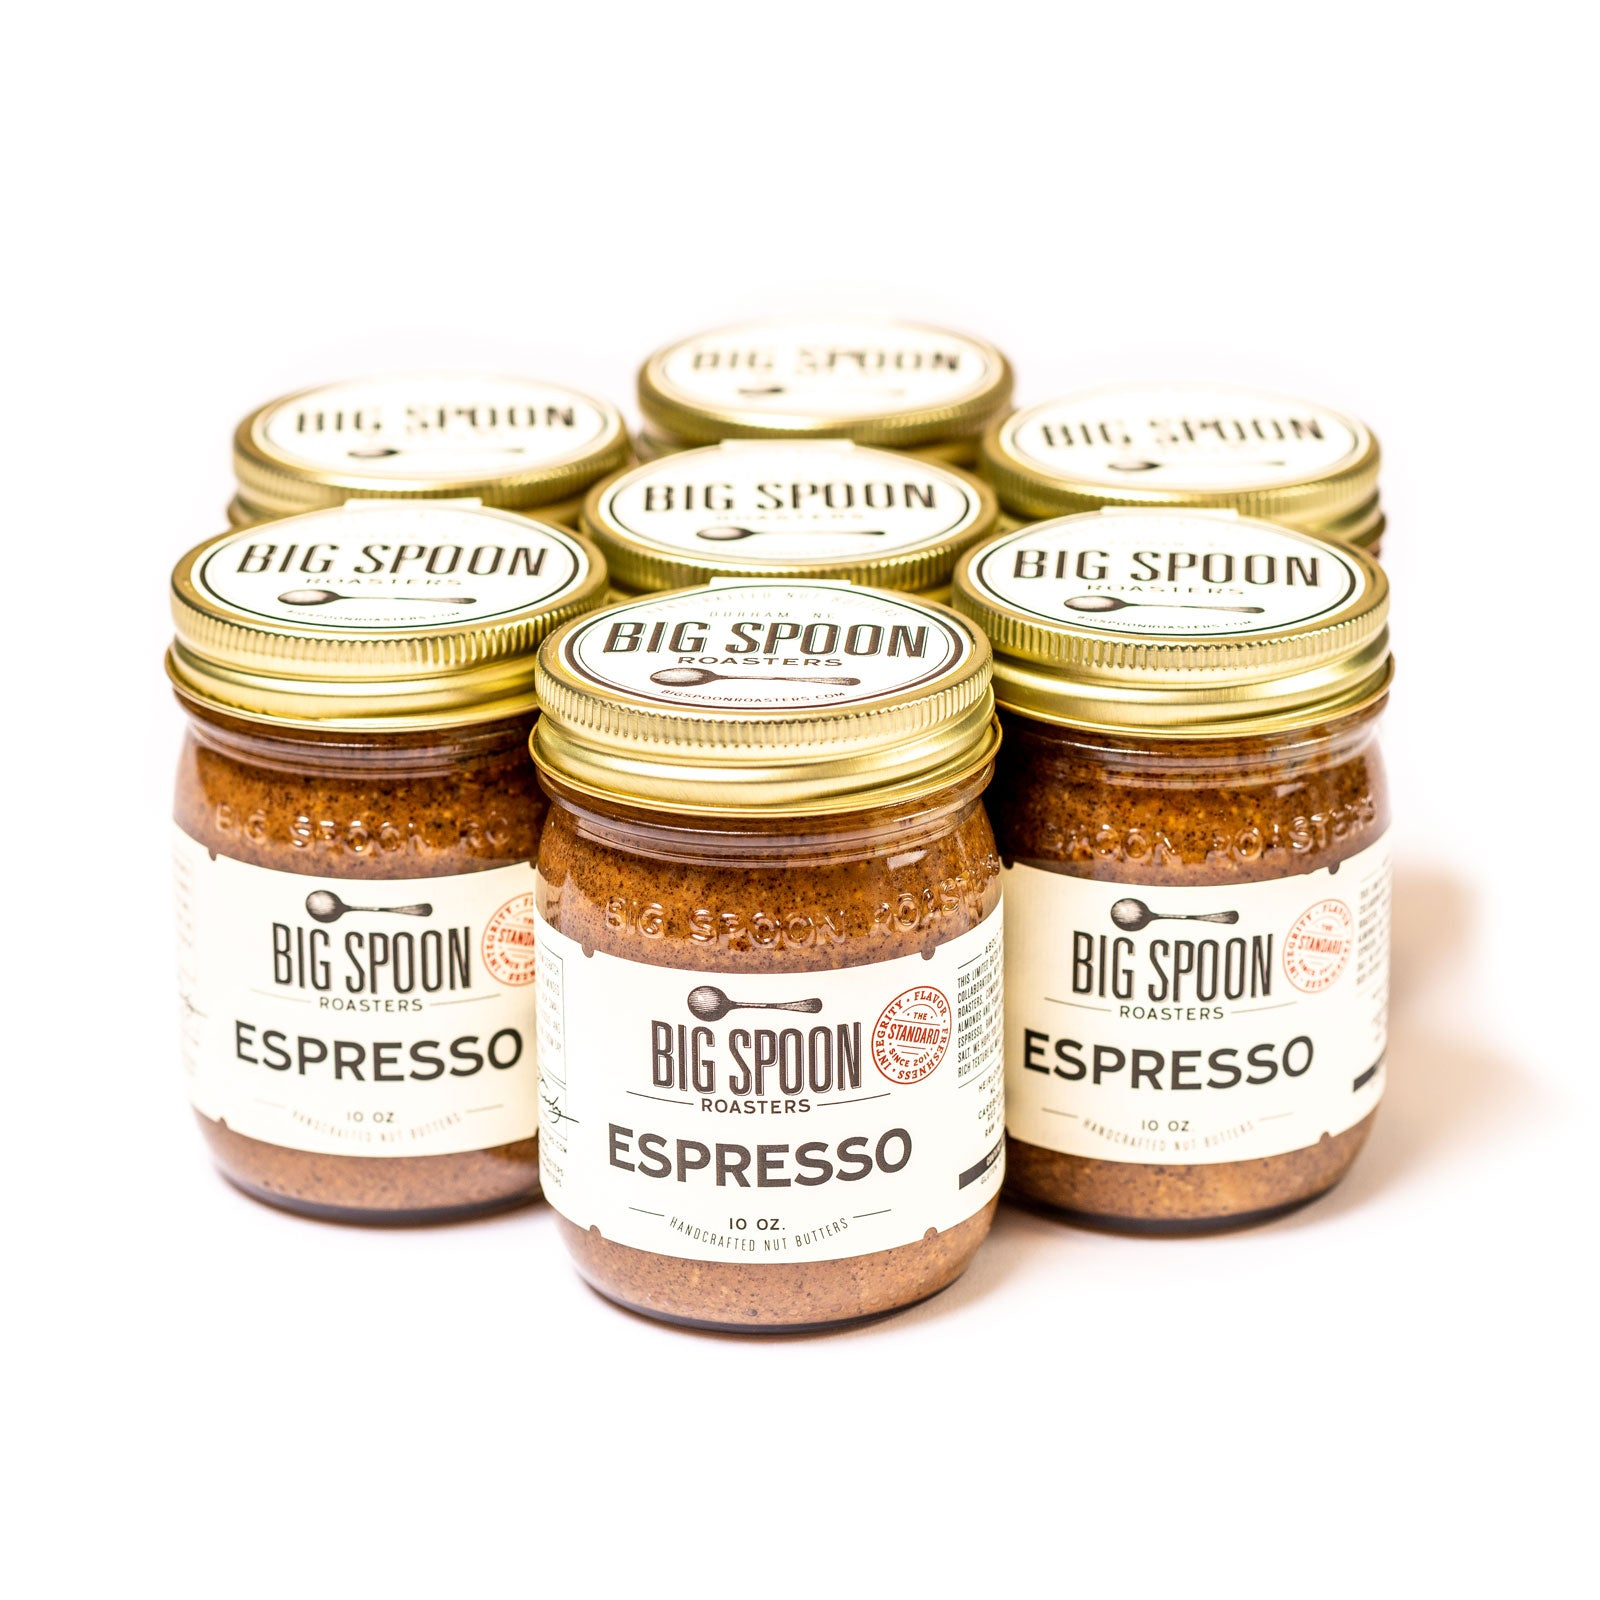 Big Spoon Espresso Nut Butter